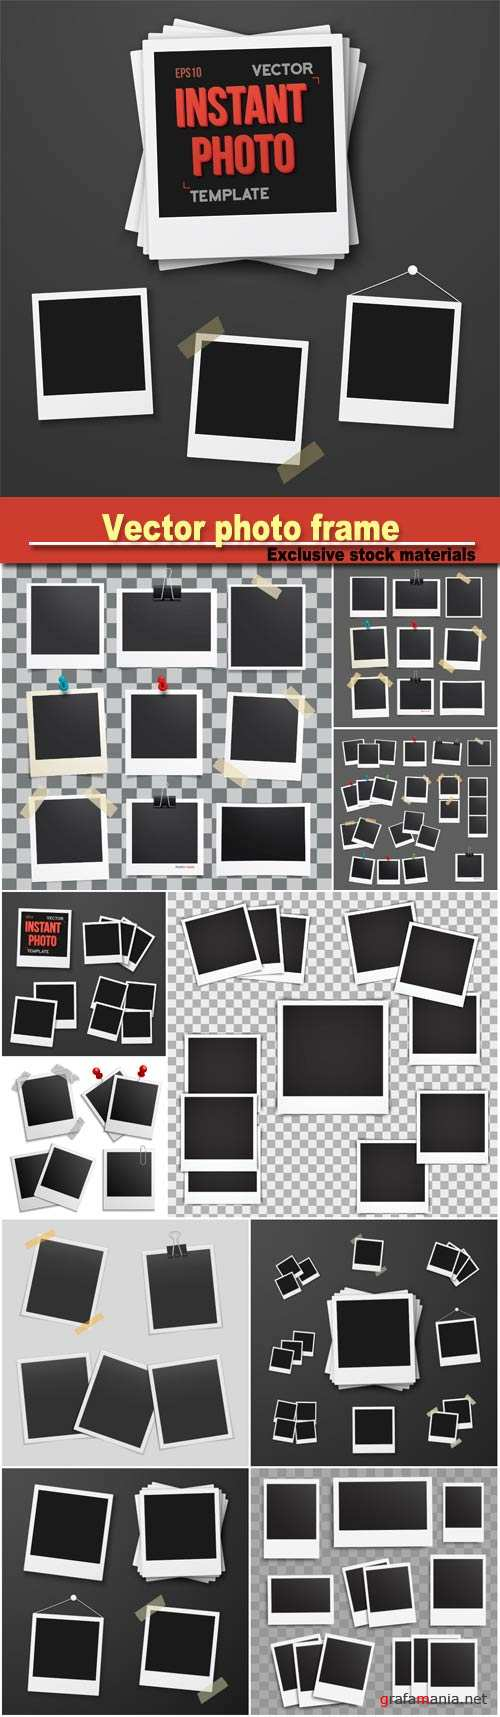 Vector photo frame, set of realistic paper photograph, template photo design